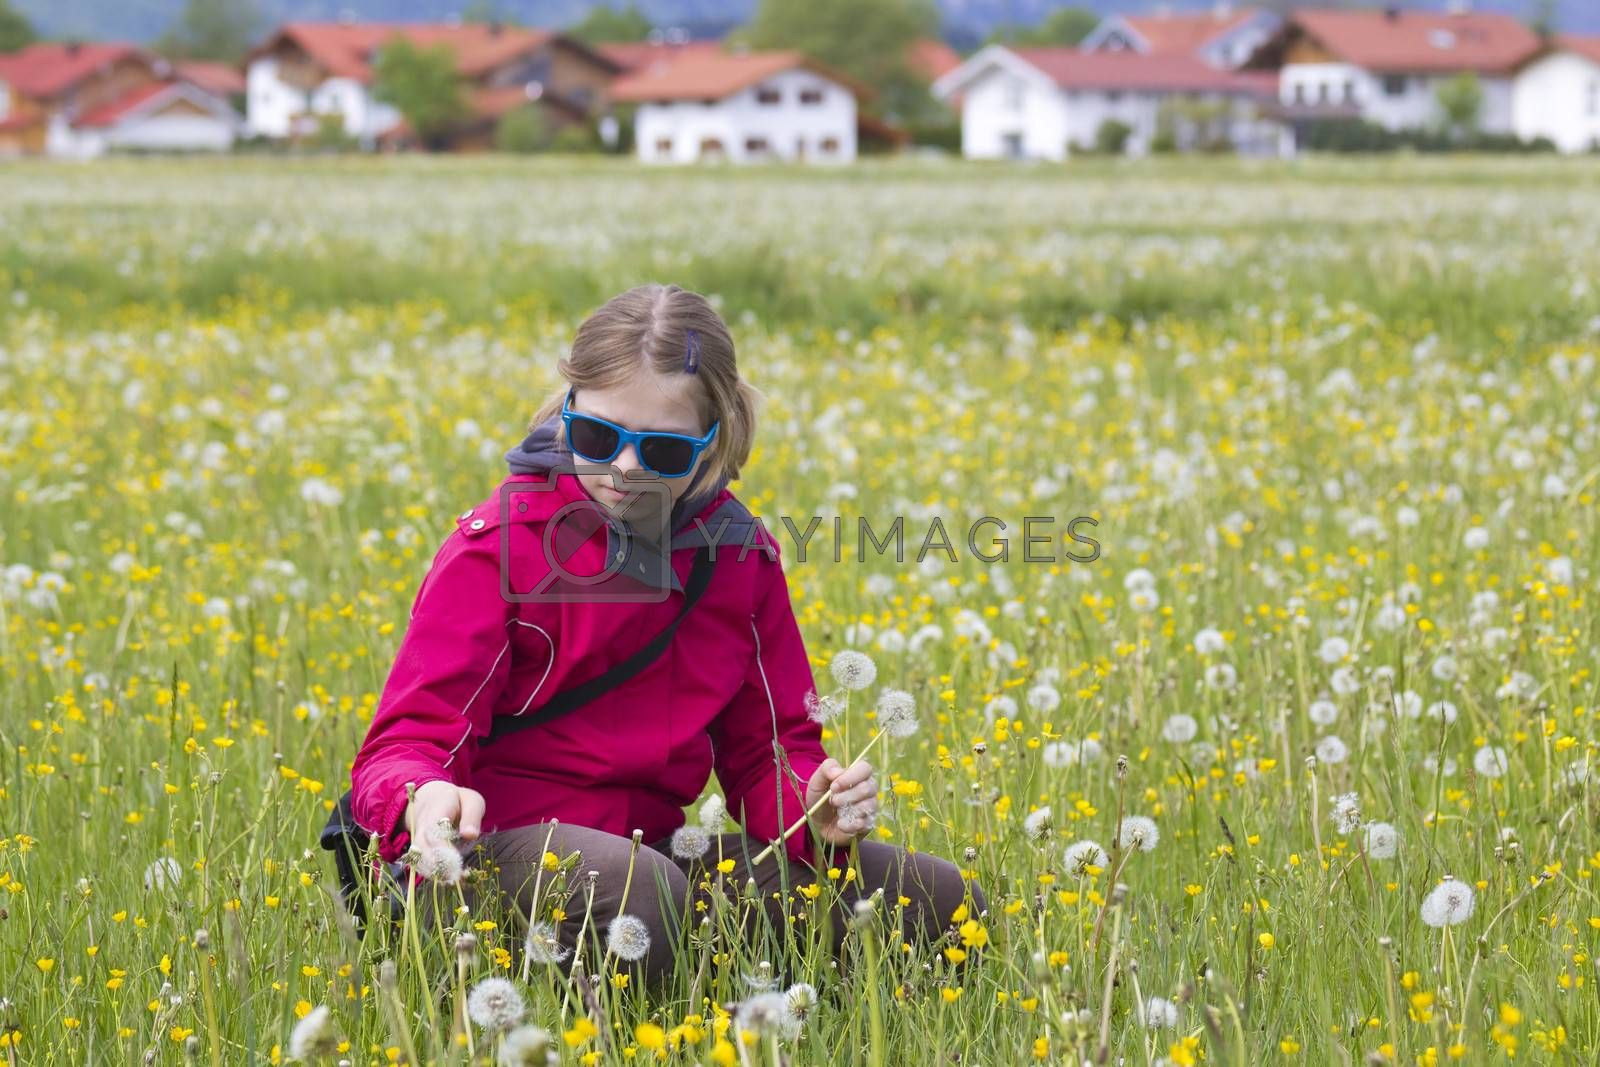 young girl on the meadow with dandelions  by miradrozdowski